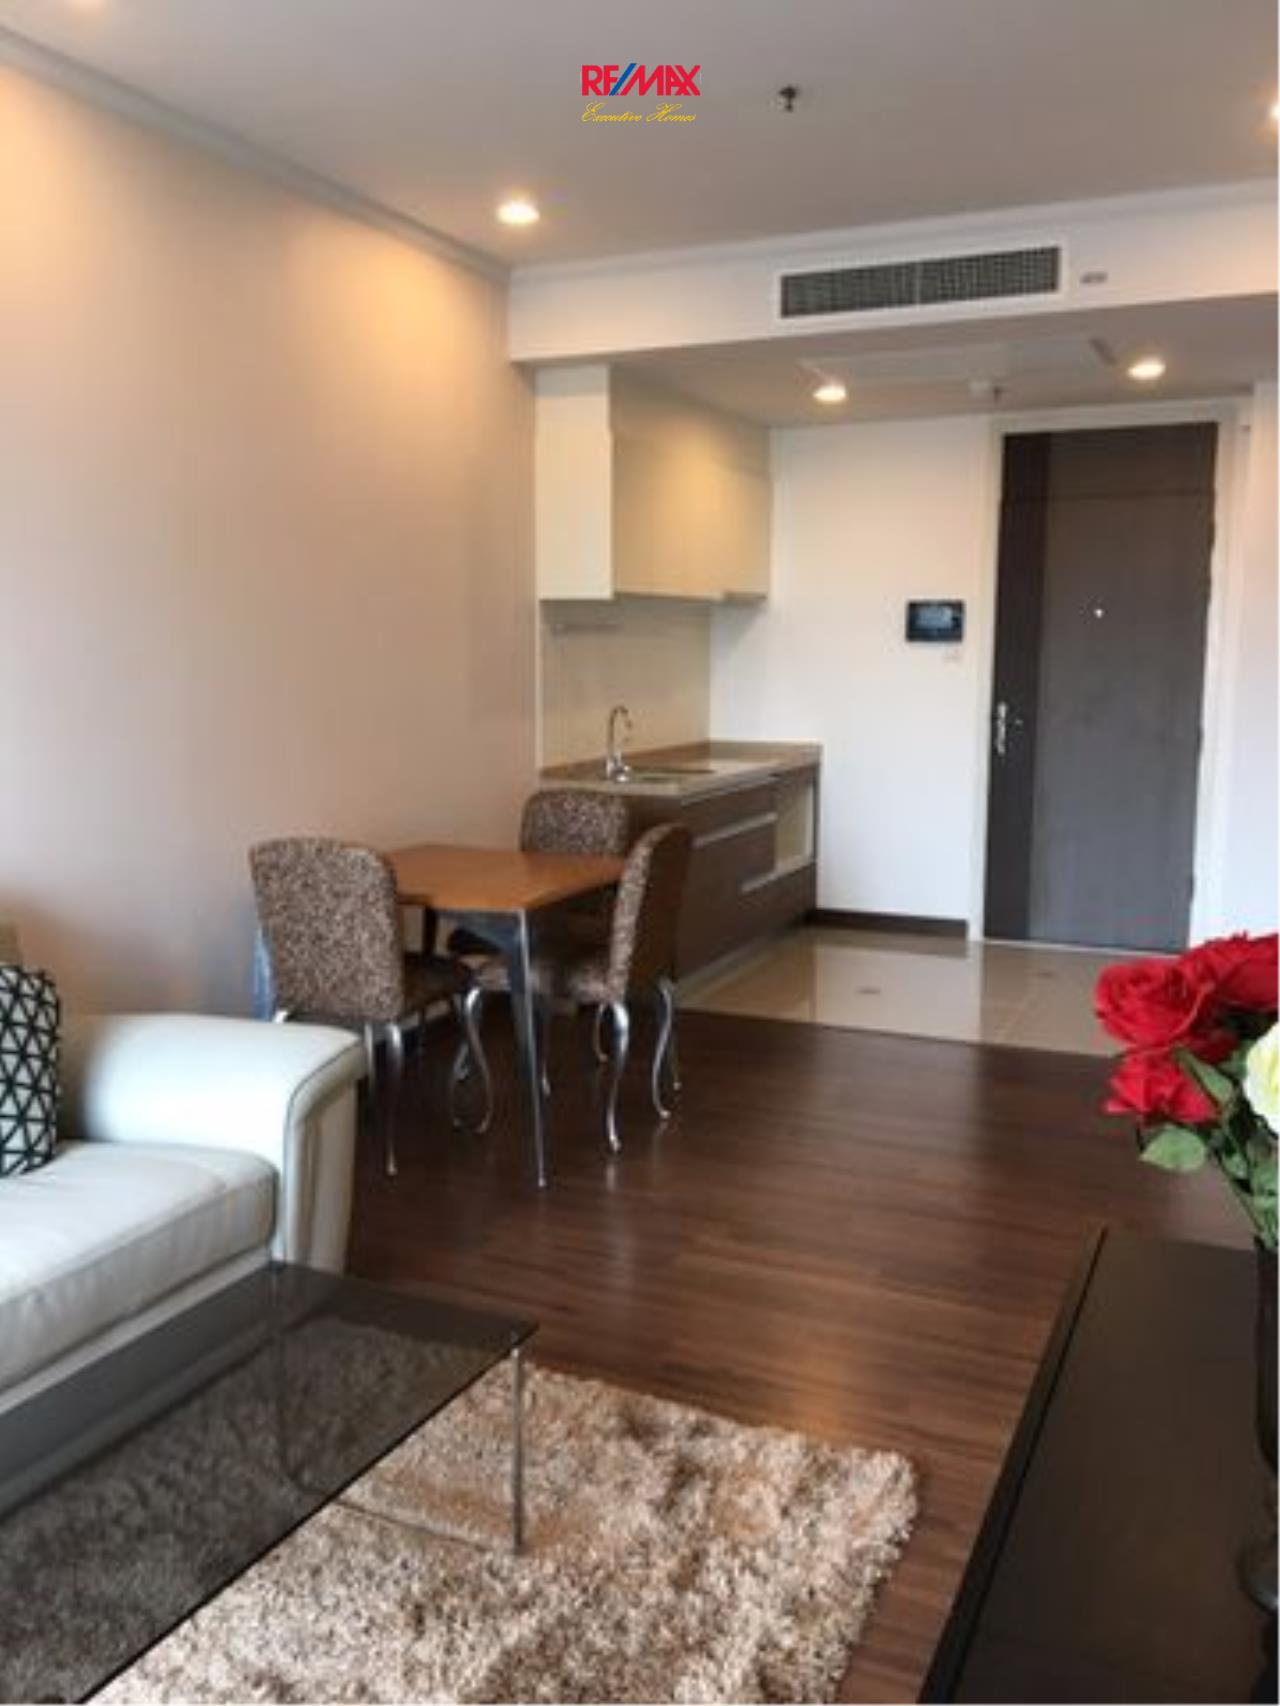 RE/MAX Executive Homes Agency's Spacious 1 Bedroom for Sale Supalai Elite Sathorn 5